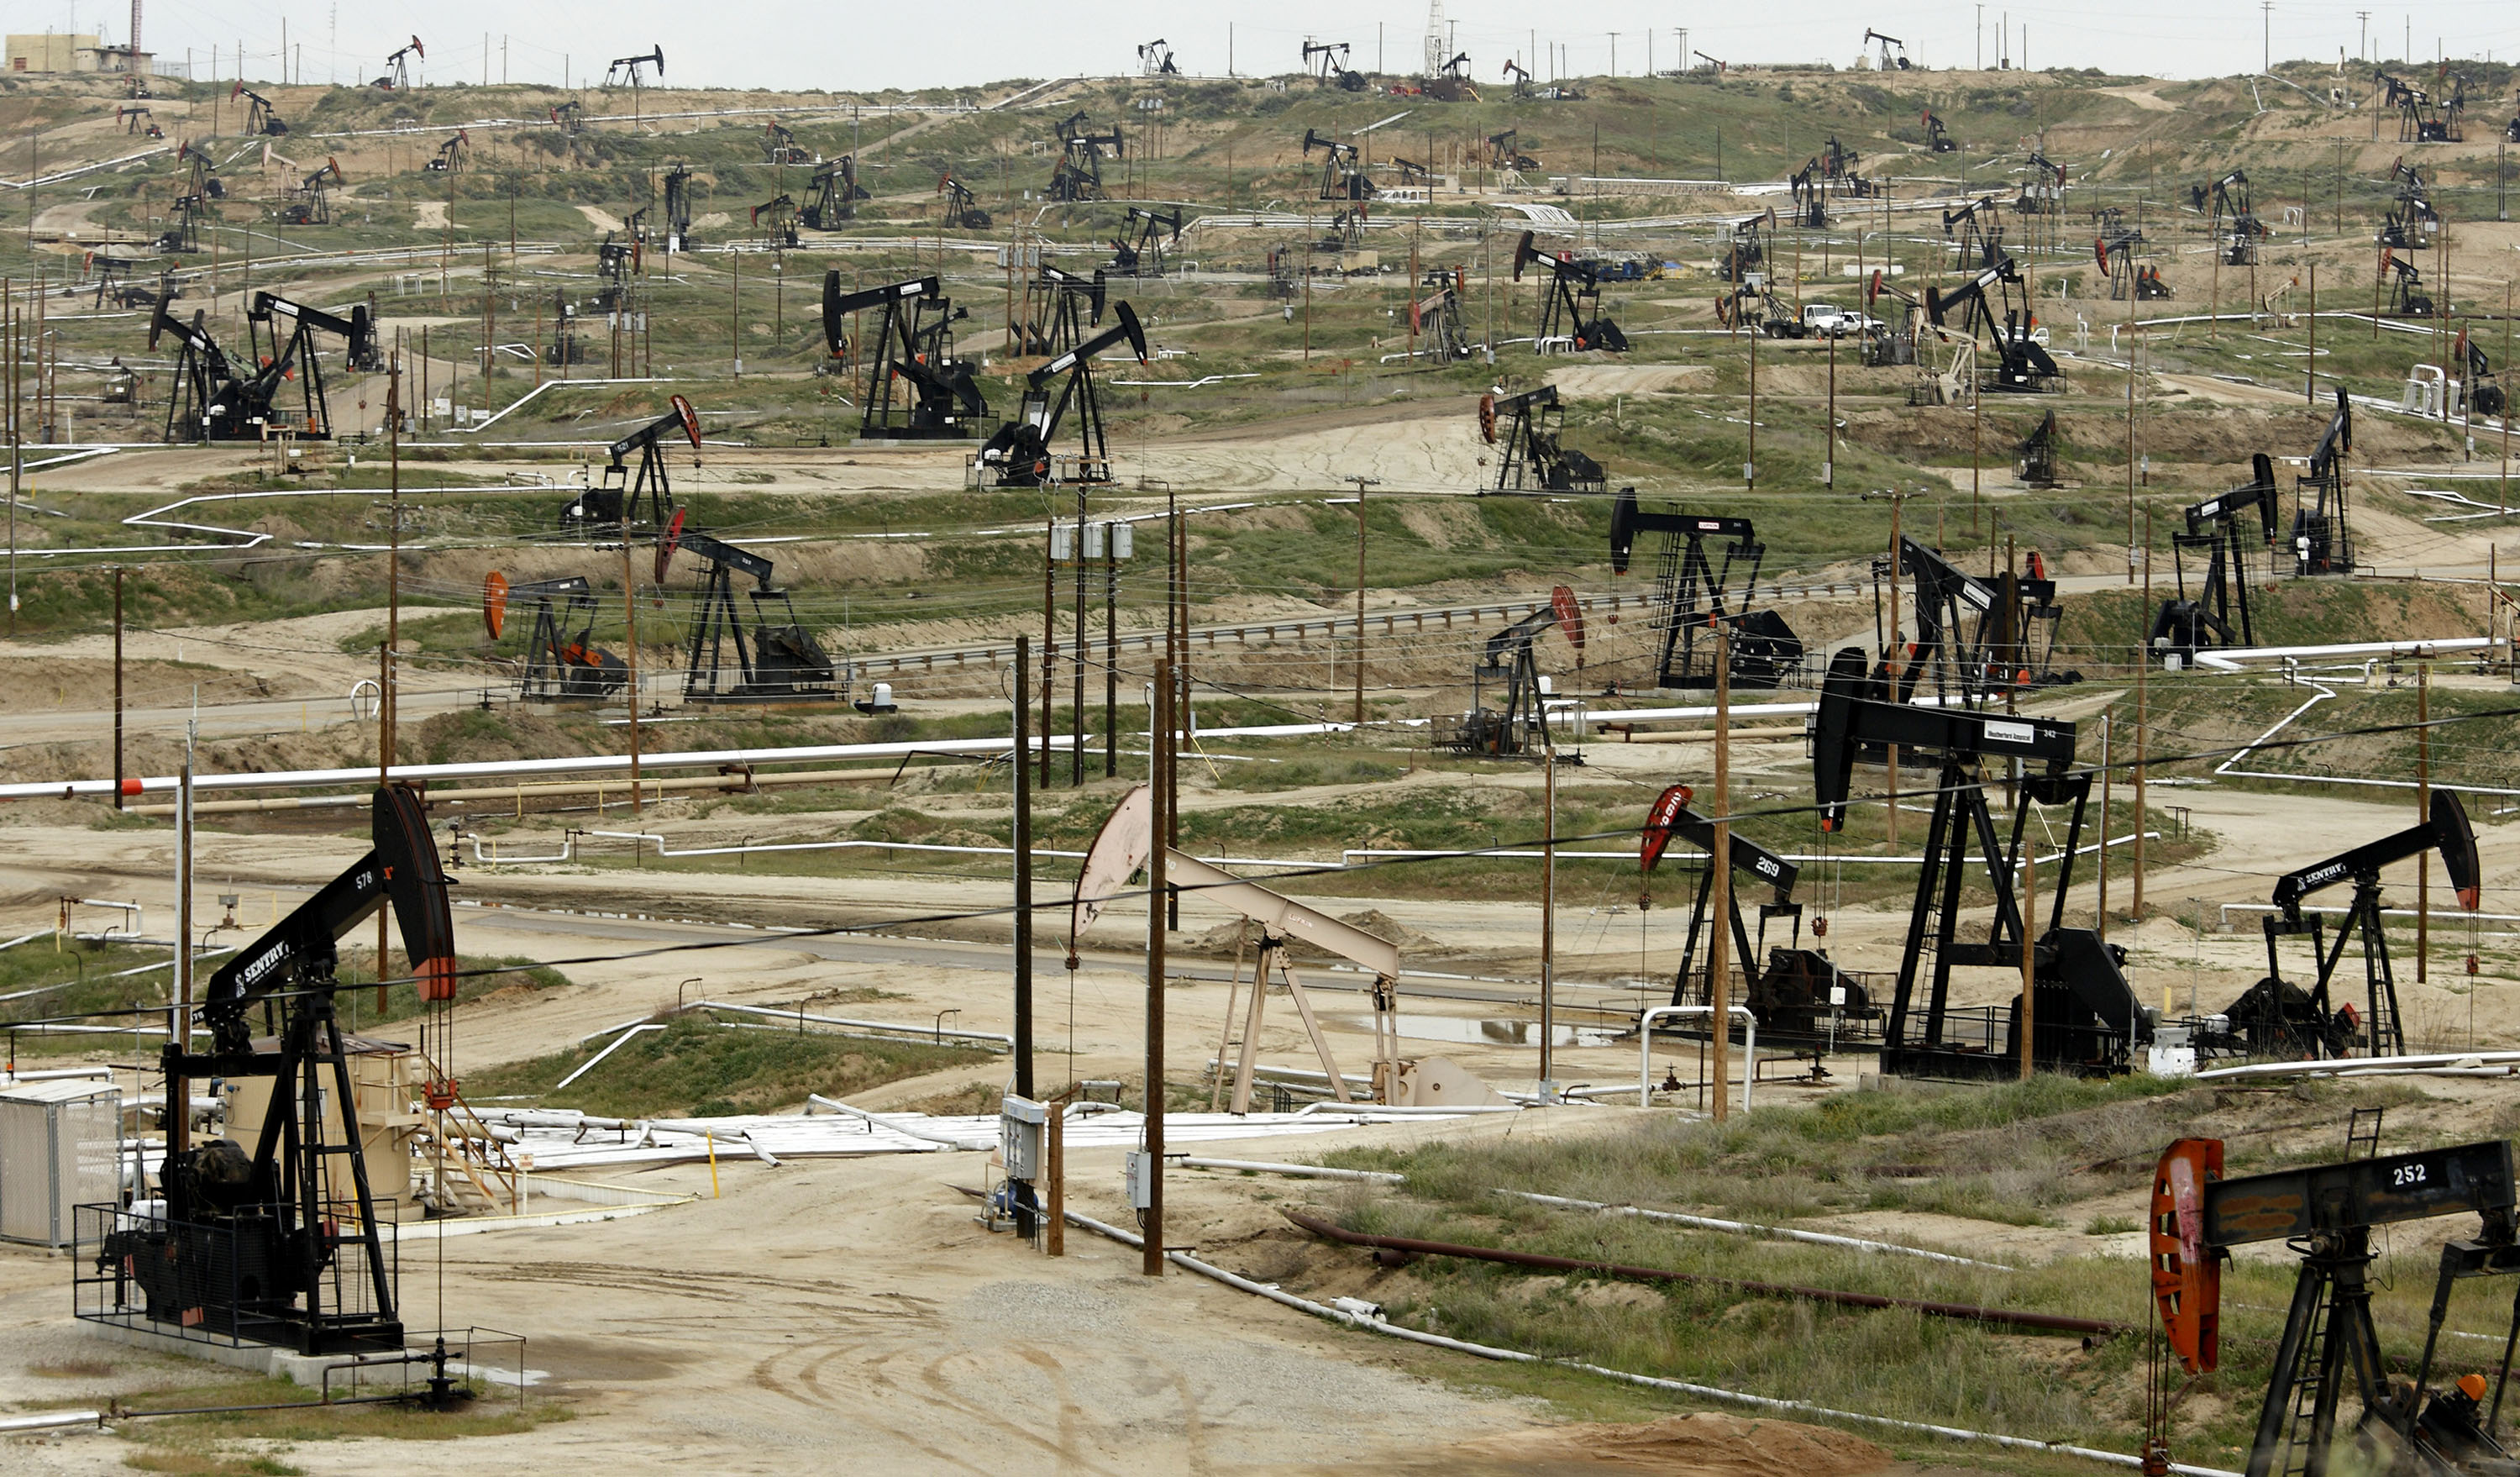 Oil pumps stand at the Chevron Corp. Kern River oil field in Bakersfield, Calif. on March 29, 2011.